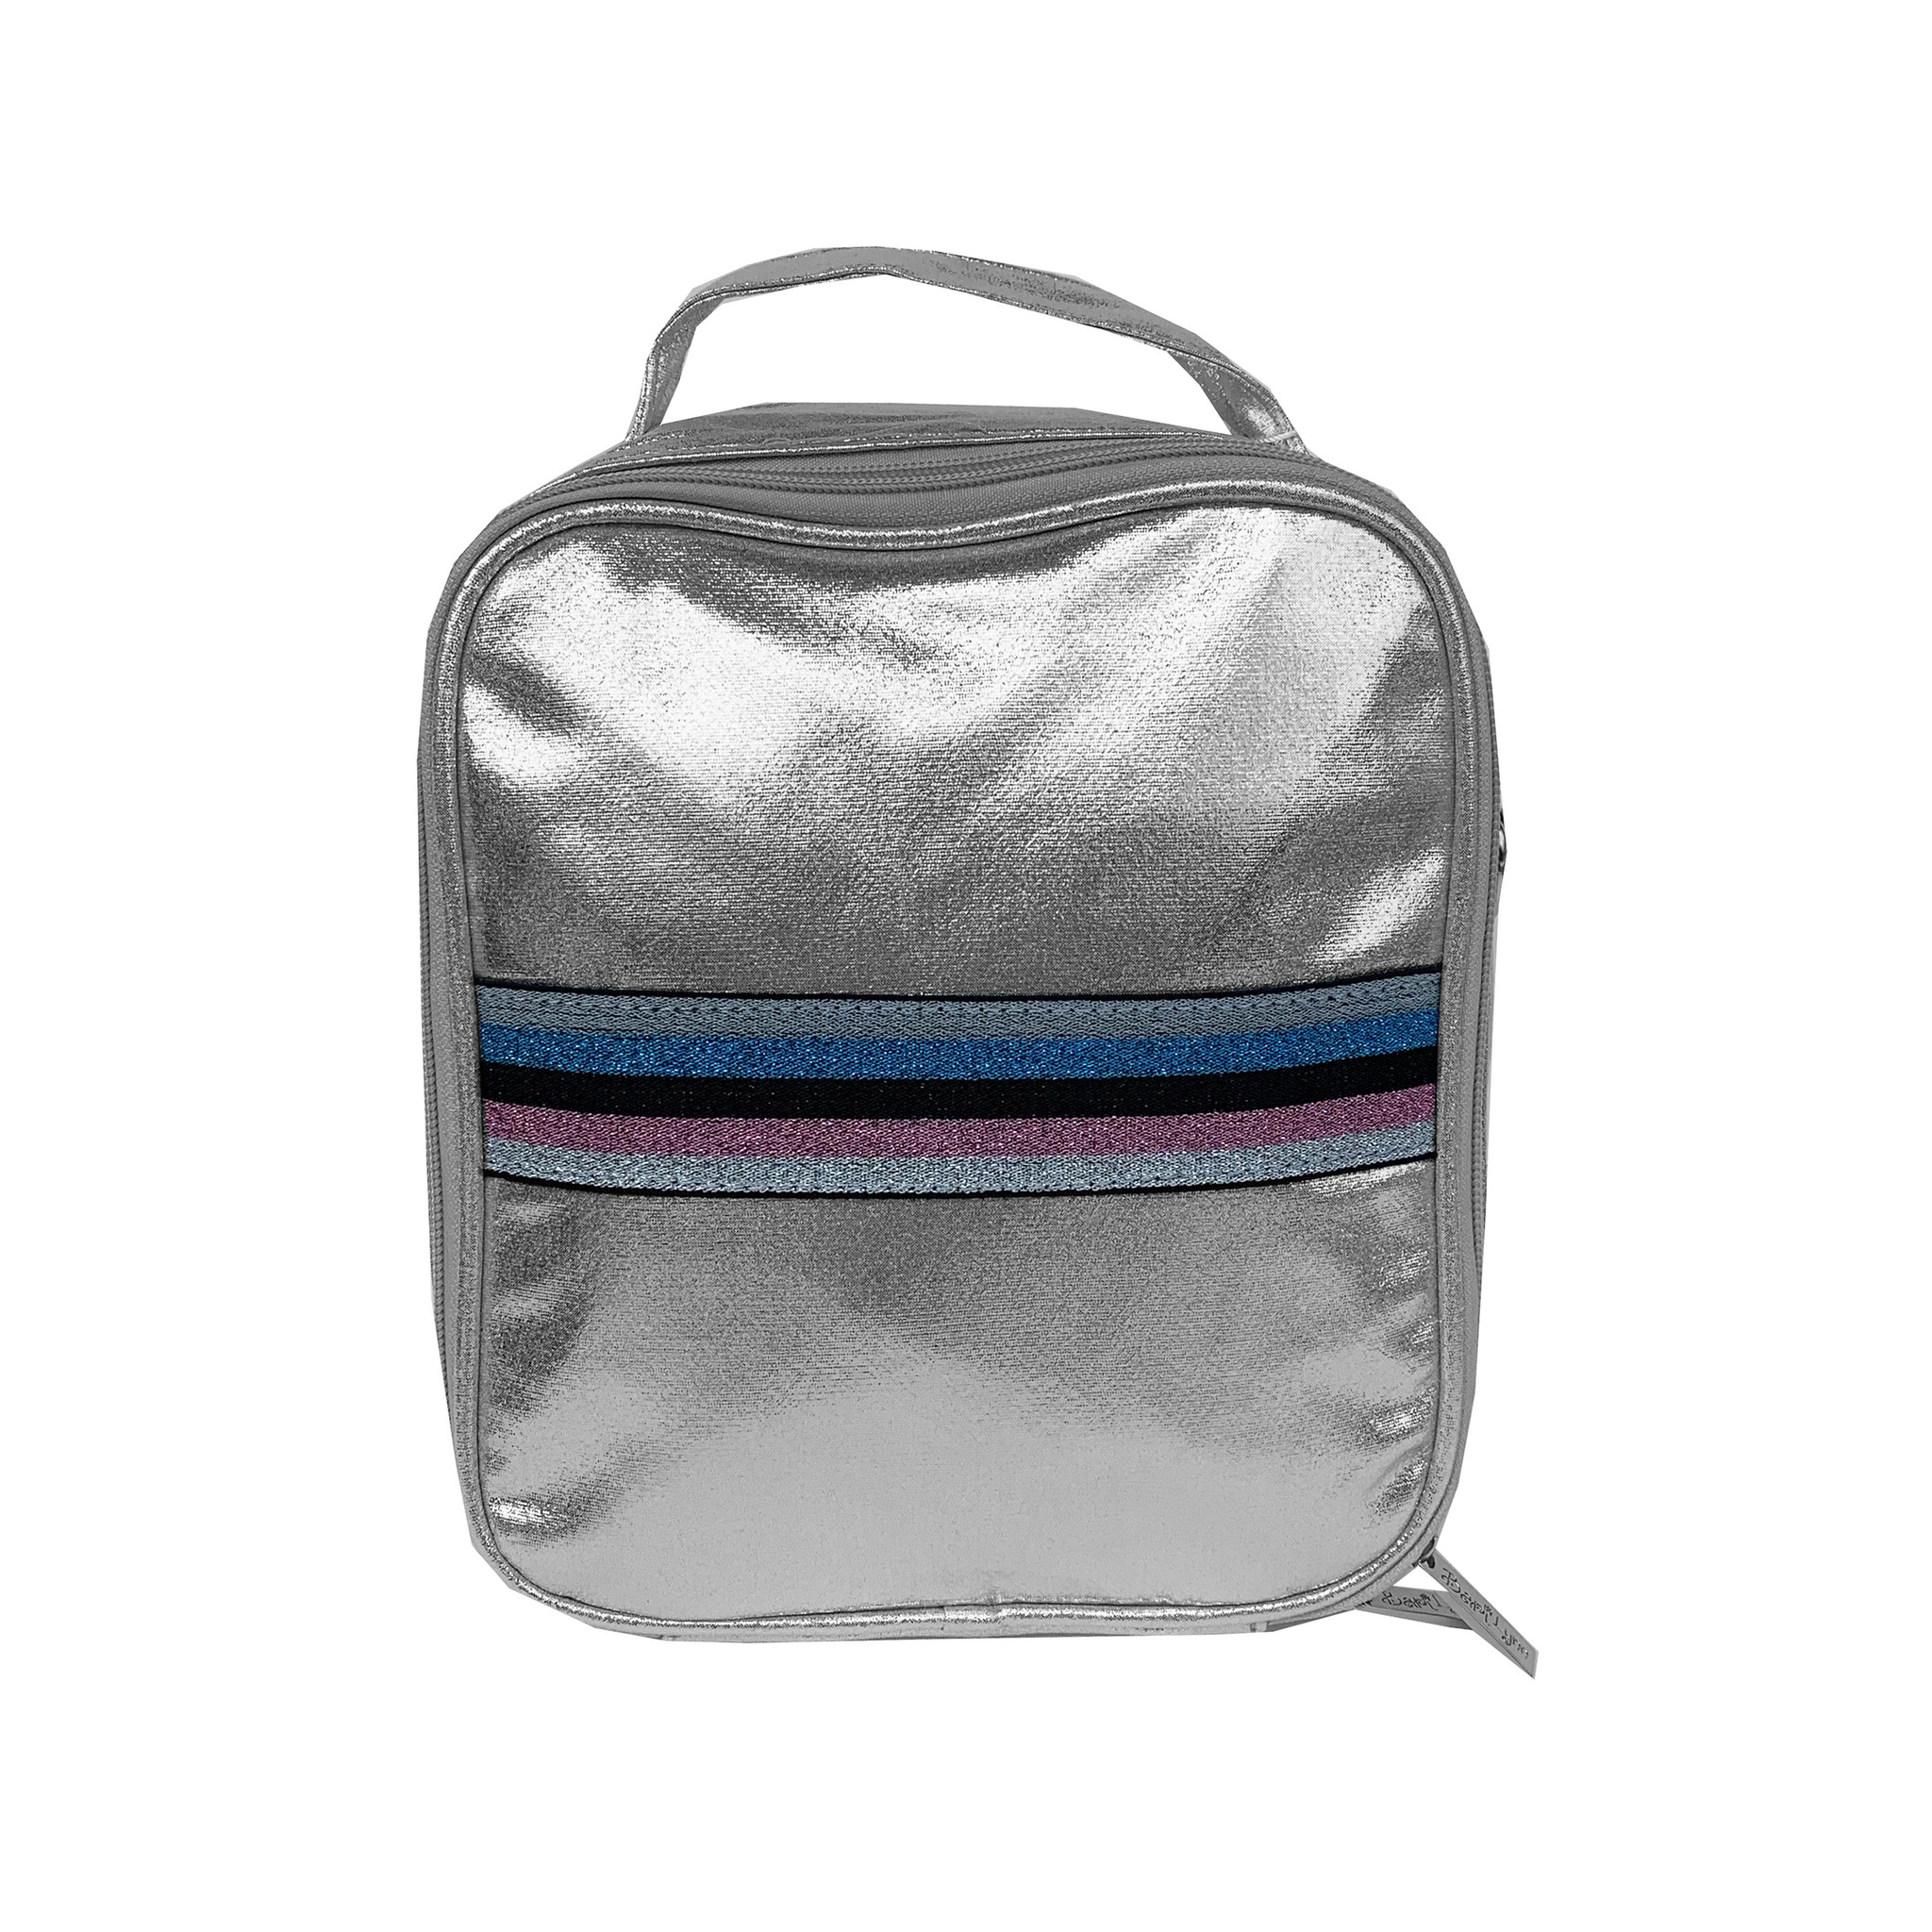 Bari Lynn Silver Lunchbox with Taping